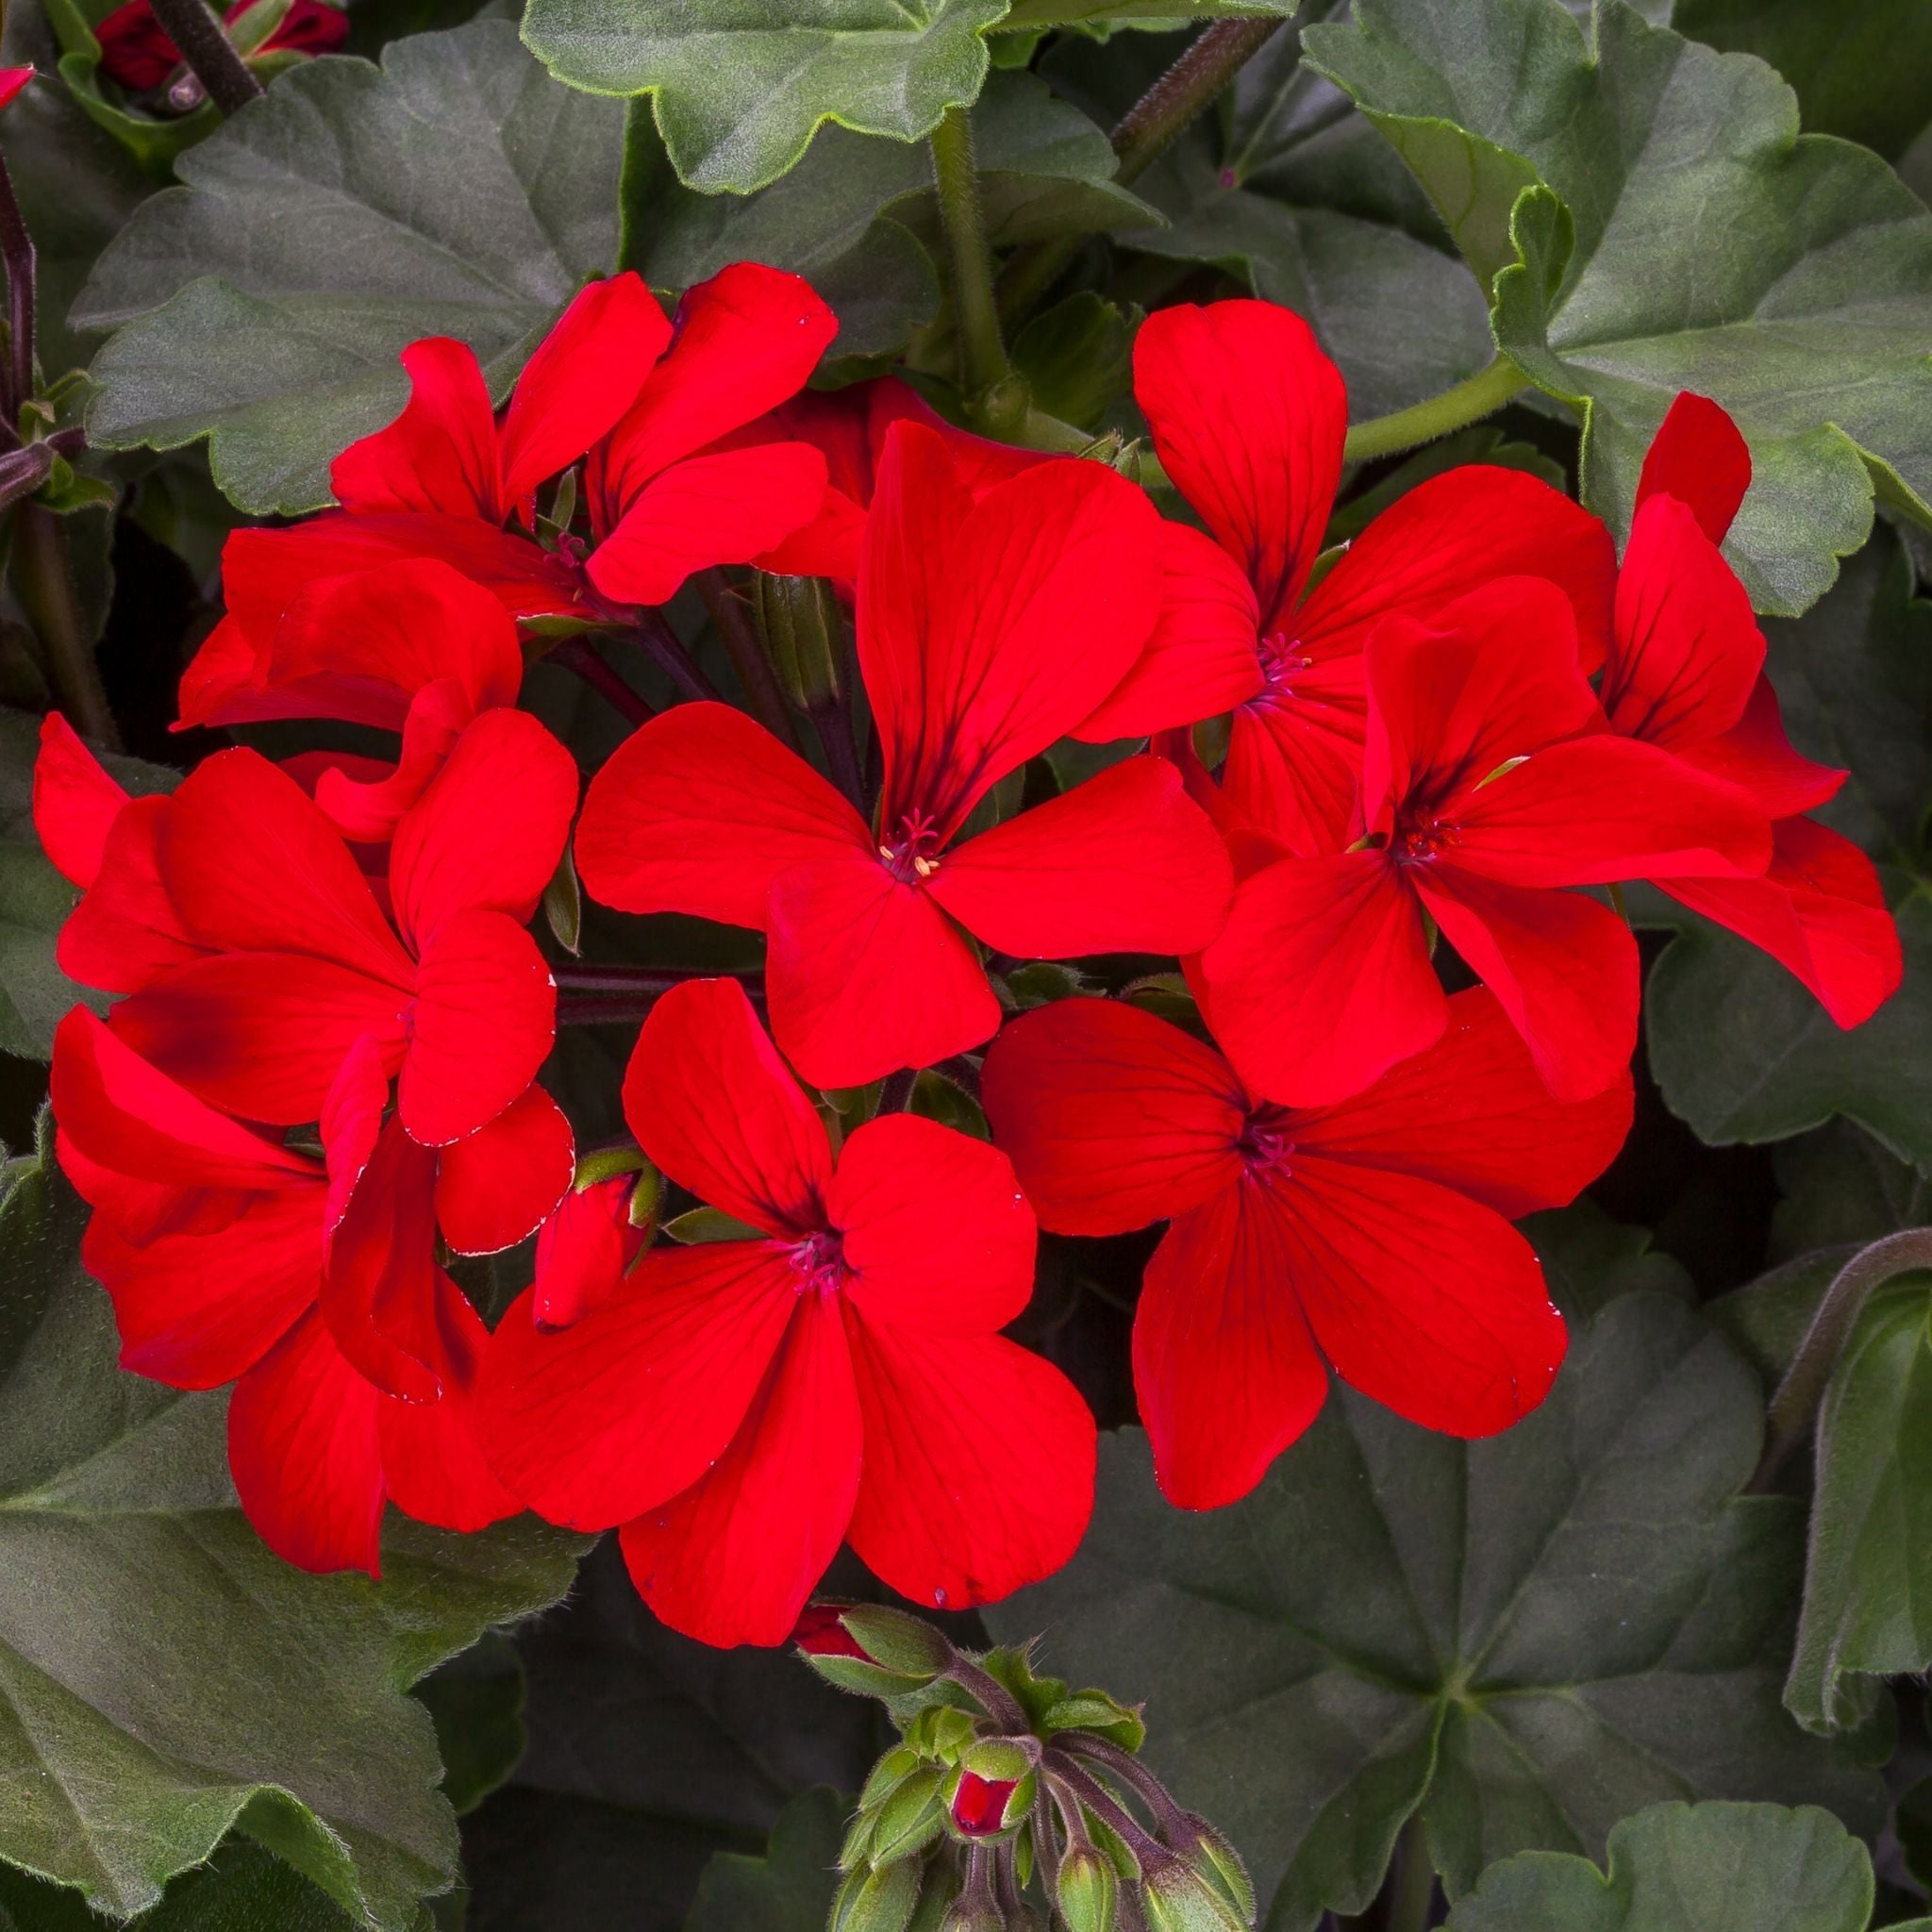 Geranium Plant Sacks for sale kollmans greenhouse twinsburg oh